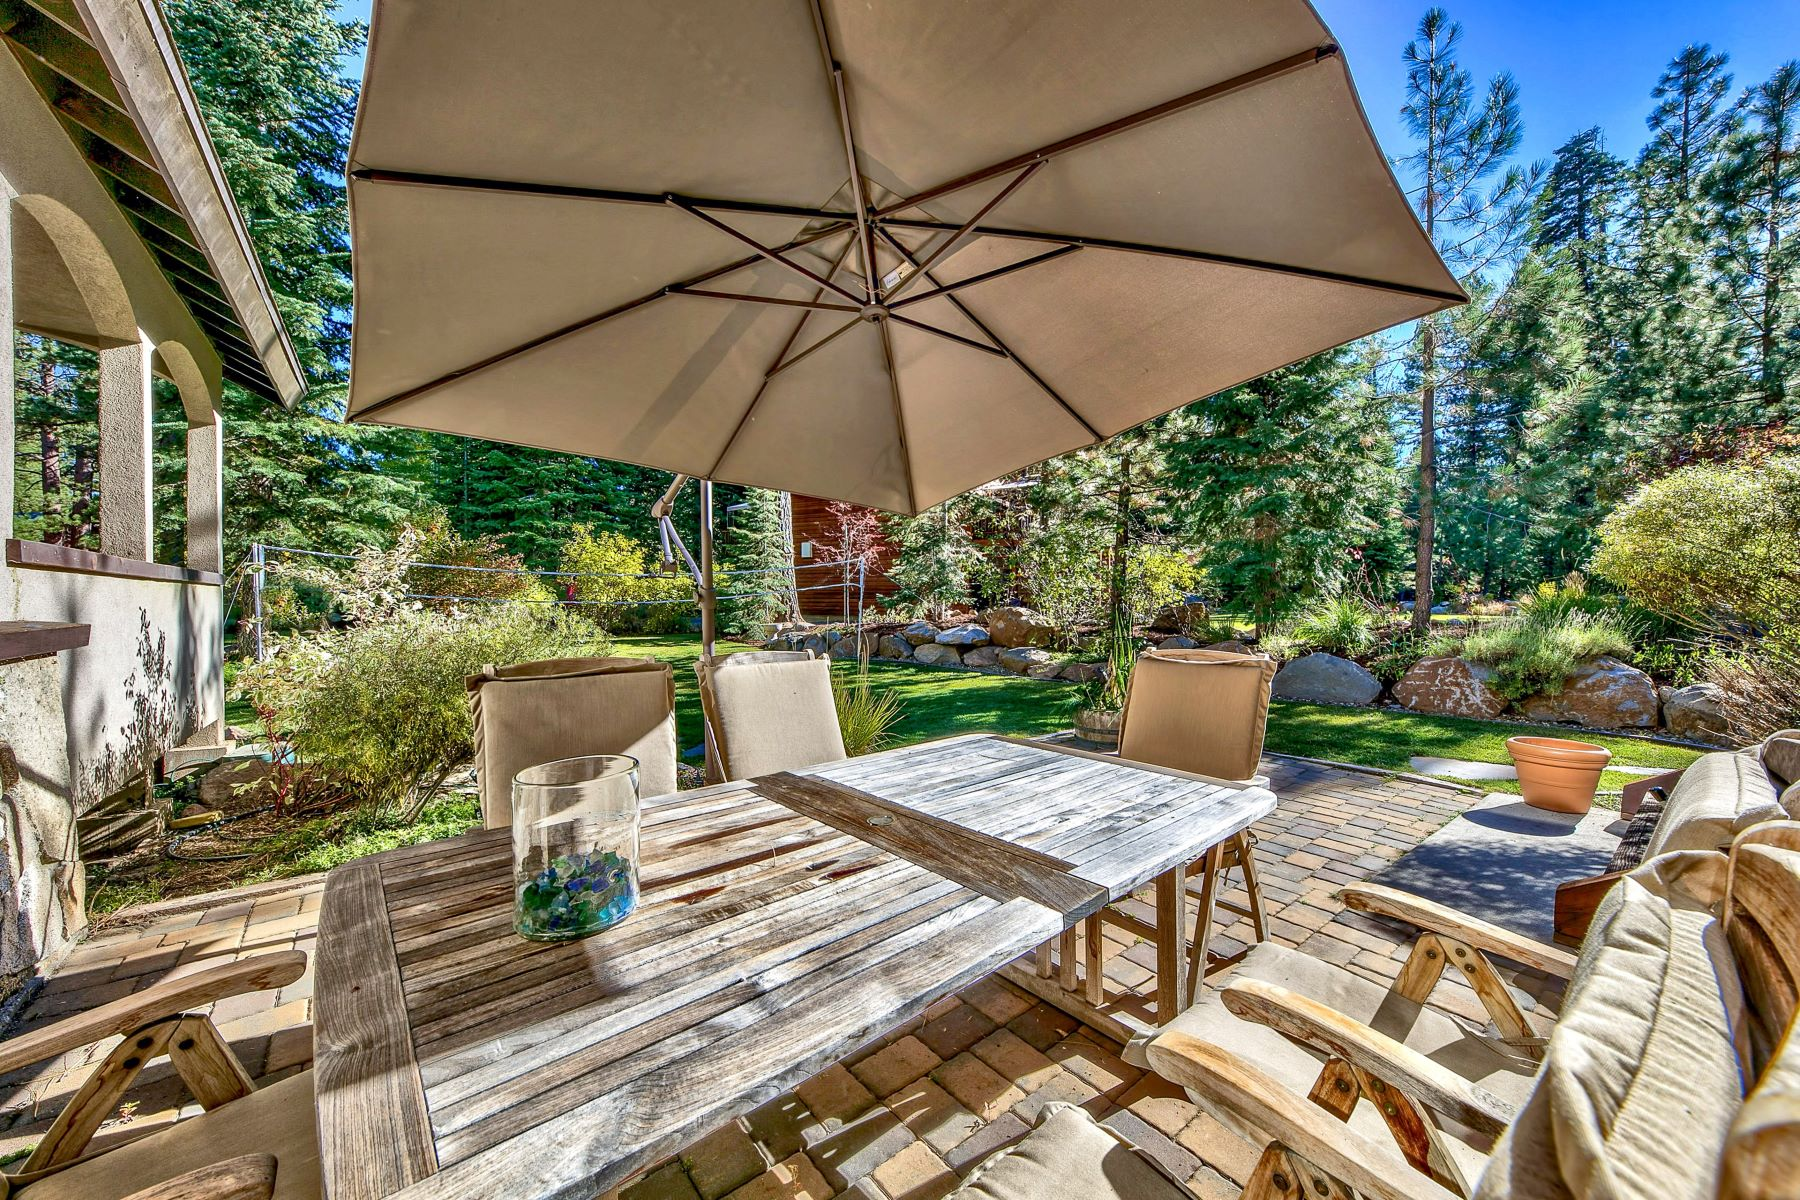 Additional photo for property listing at Estate In The Woods 11550 Stillwater Court Truckee, California 96161 Estados Unidos